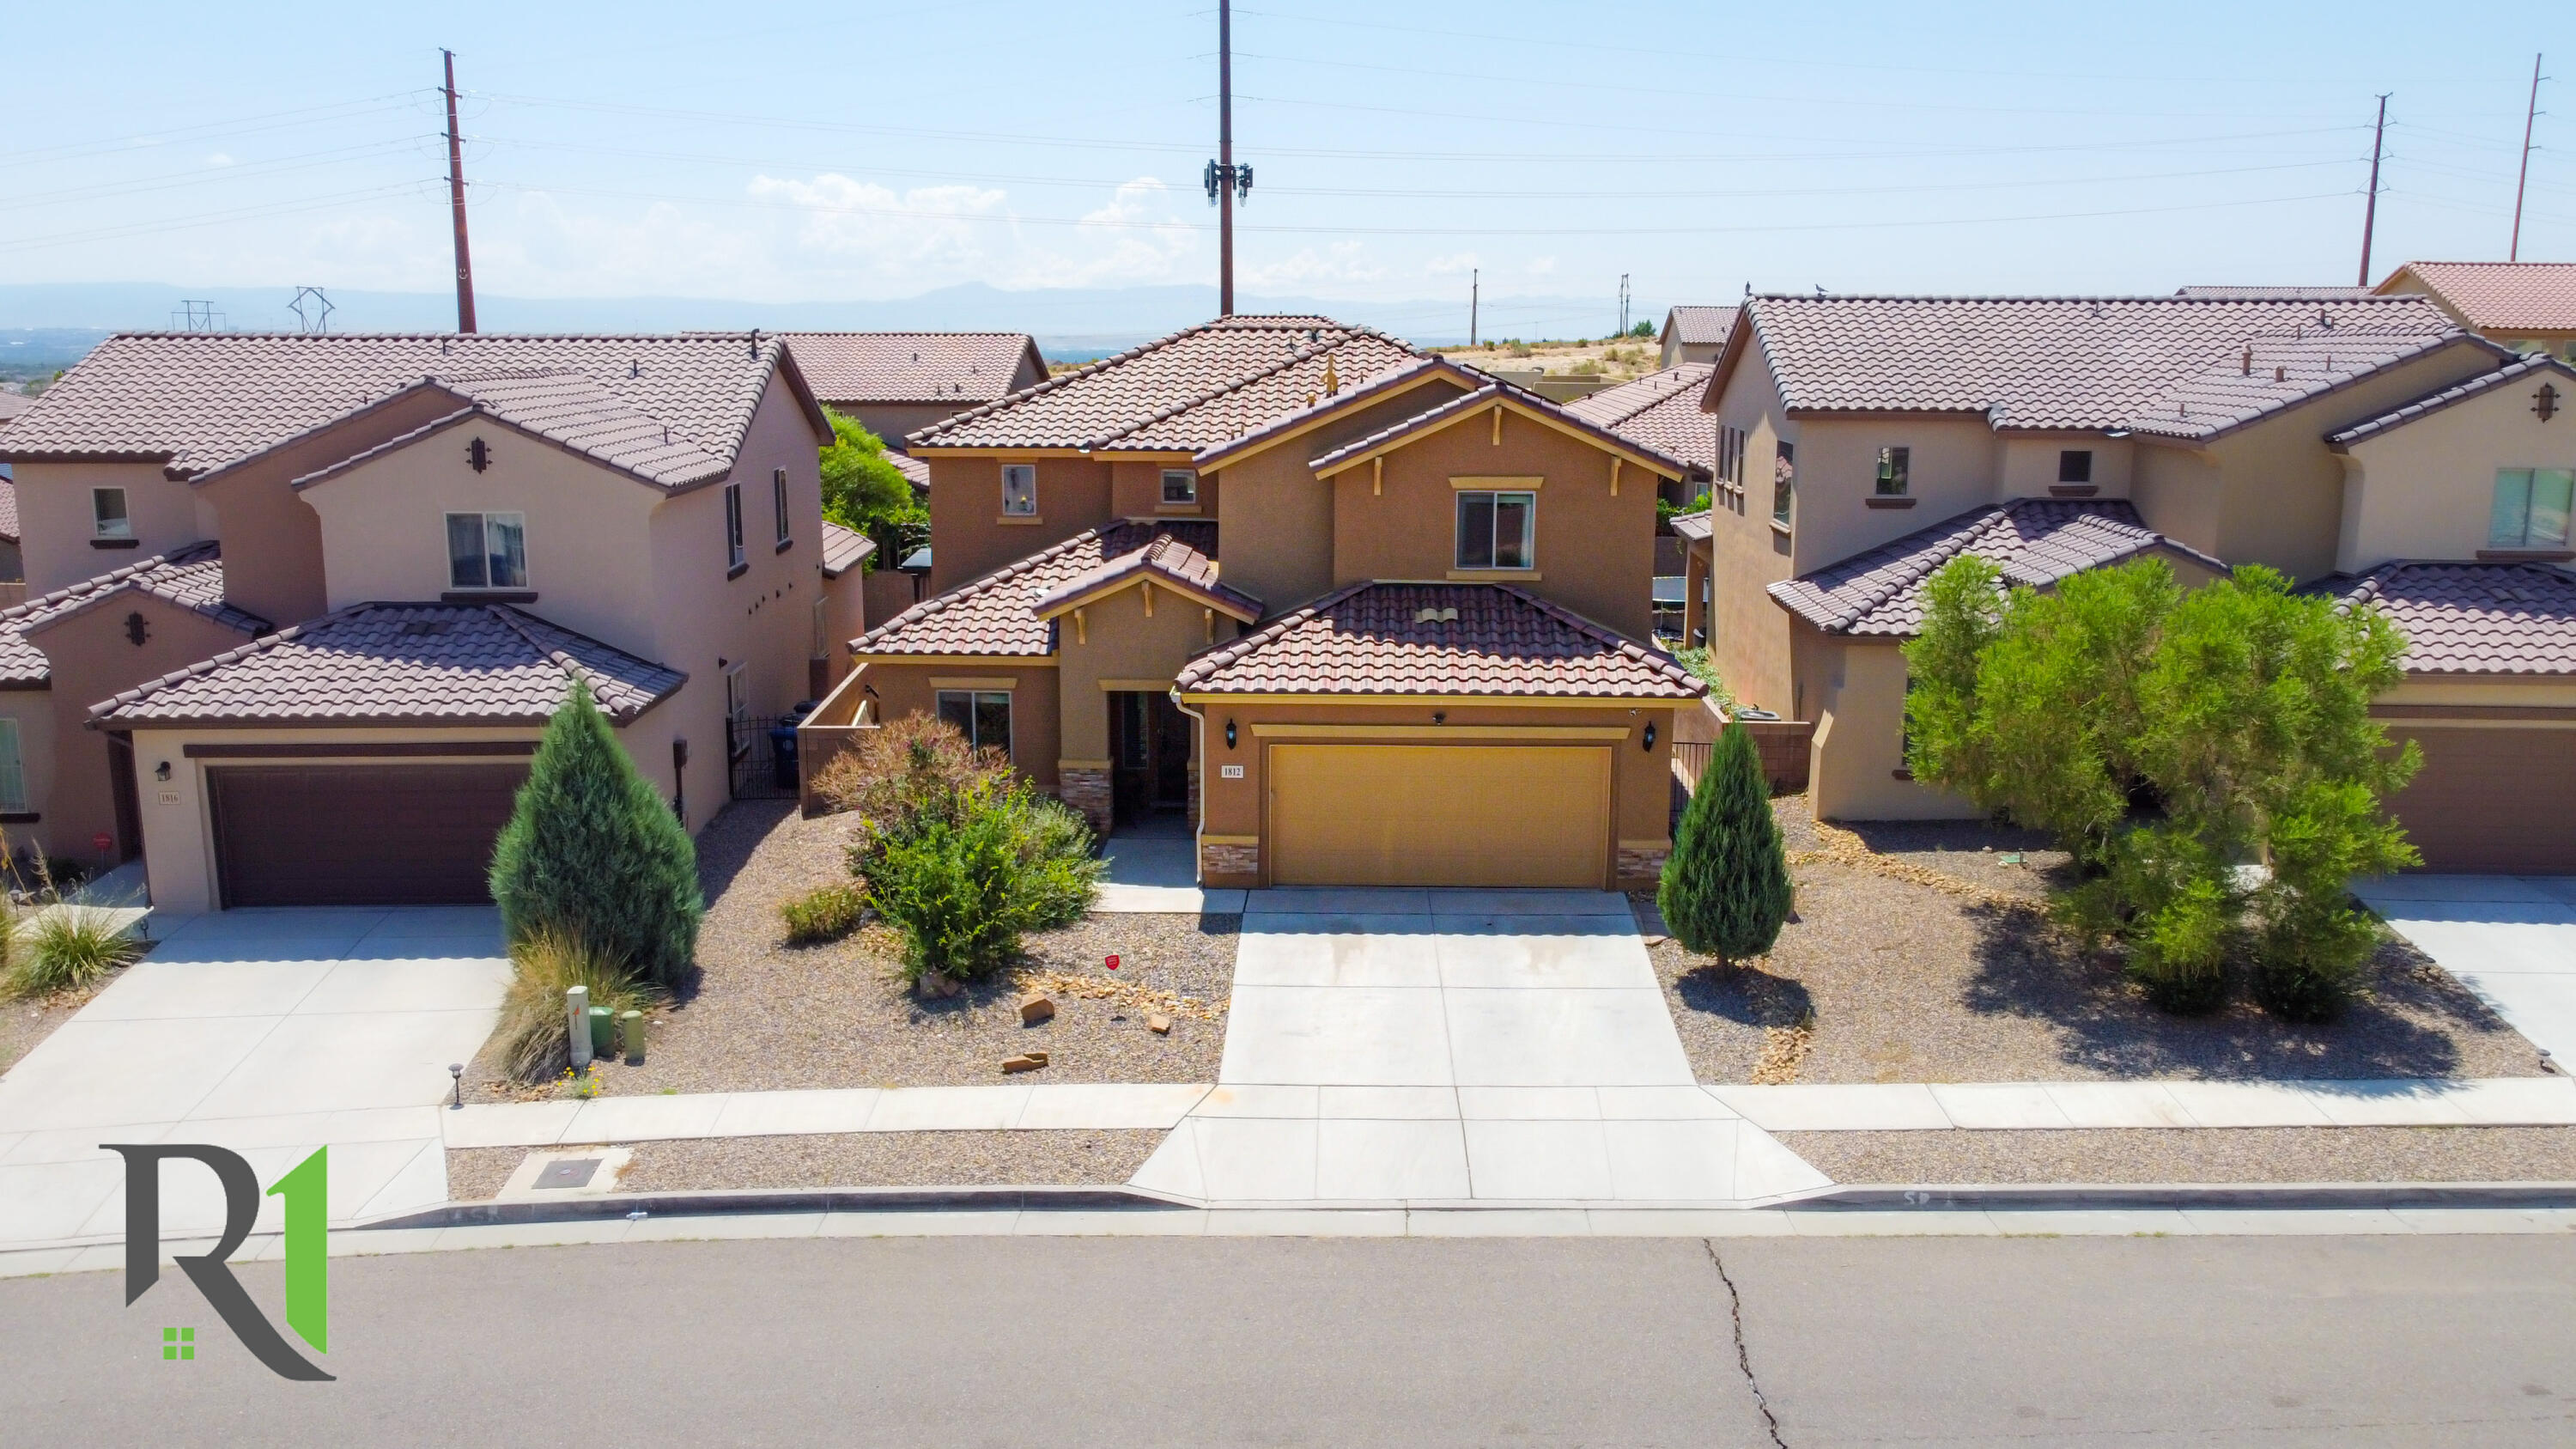 5 bedroom 4 full bath home with two living areas. Master bedroom is on the main floor the bath has a separate  shower and tub. There is an office with french  door on the main floor.